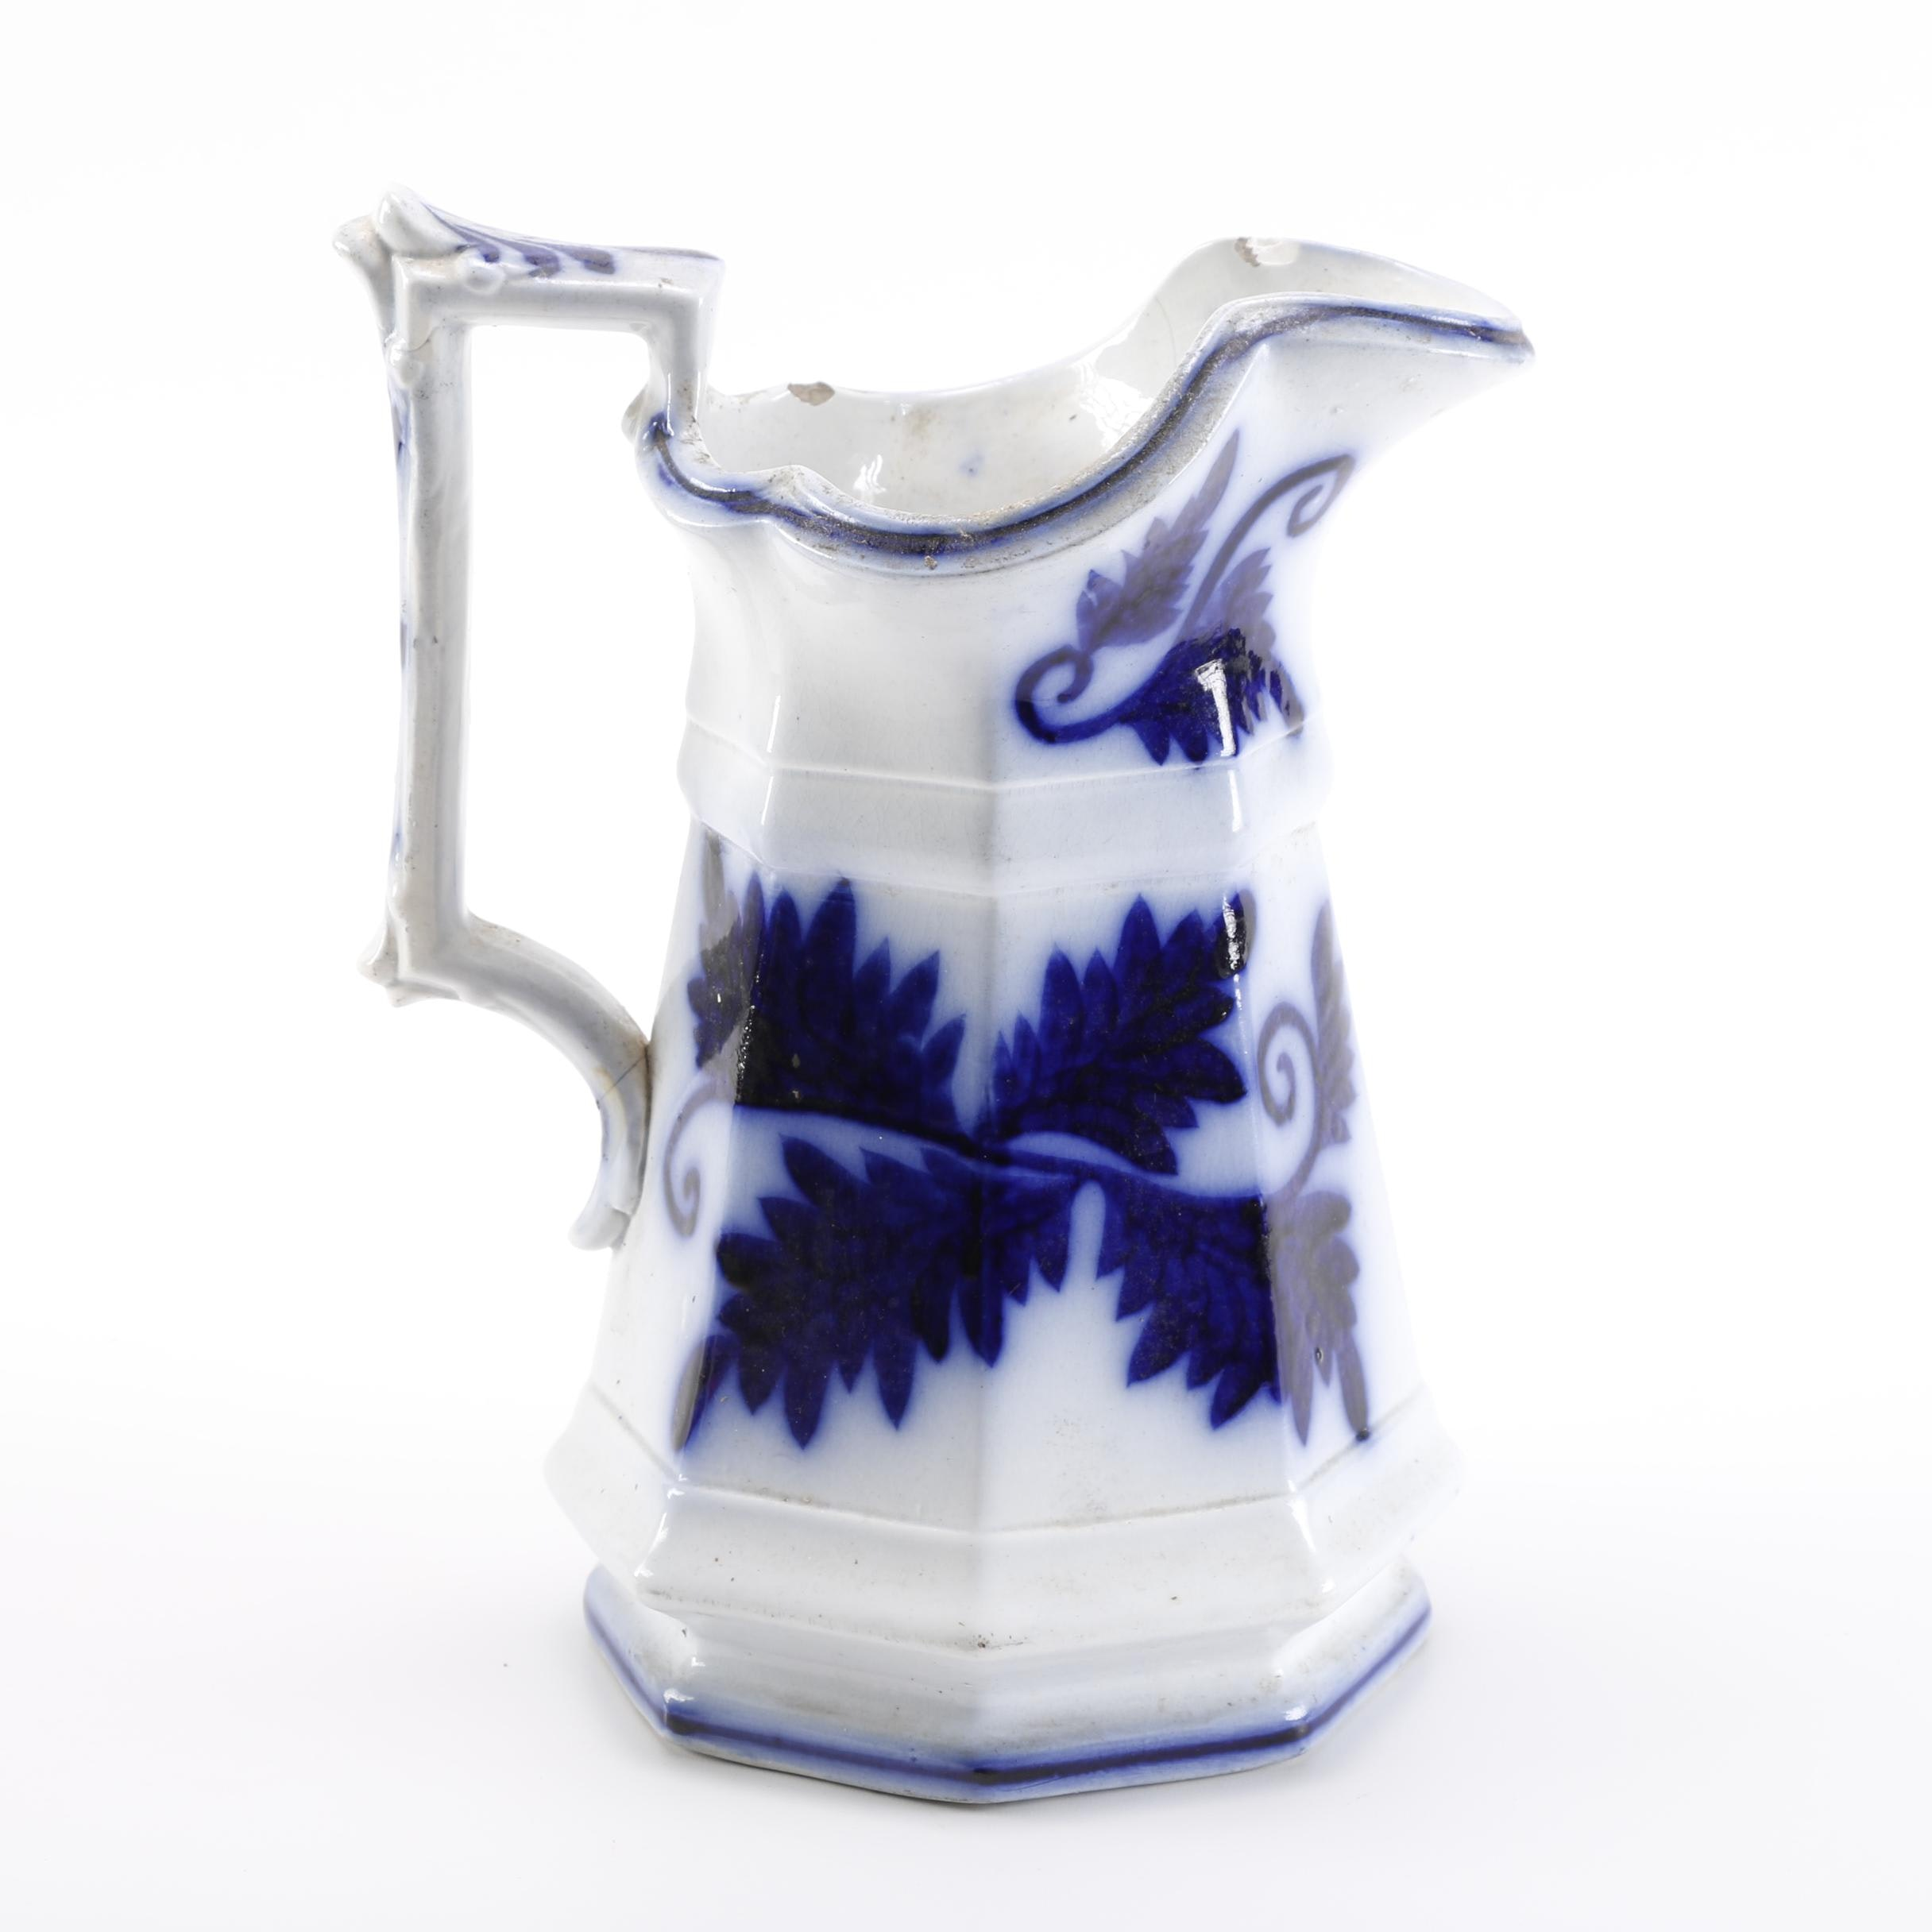 Flow Blue Style Ceramic Pitcher